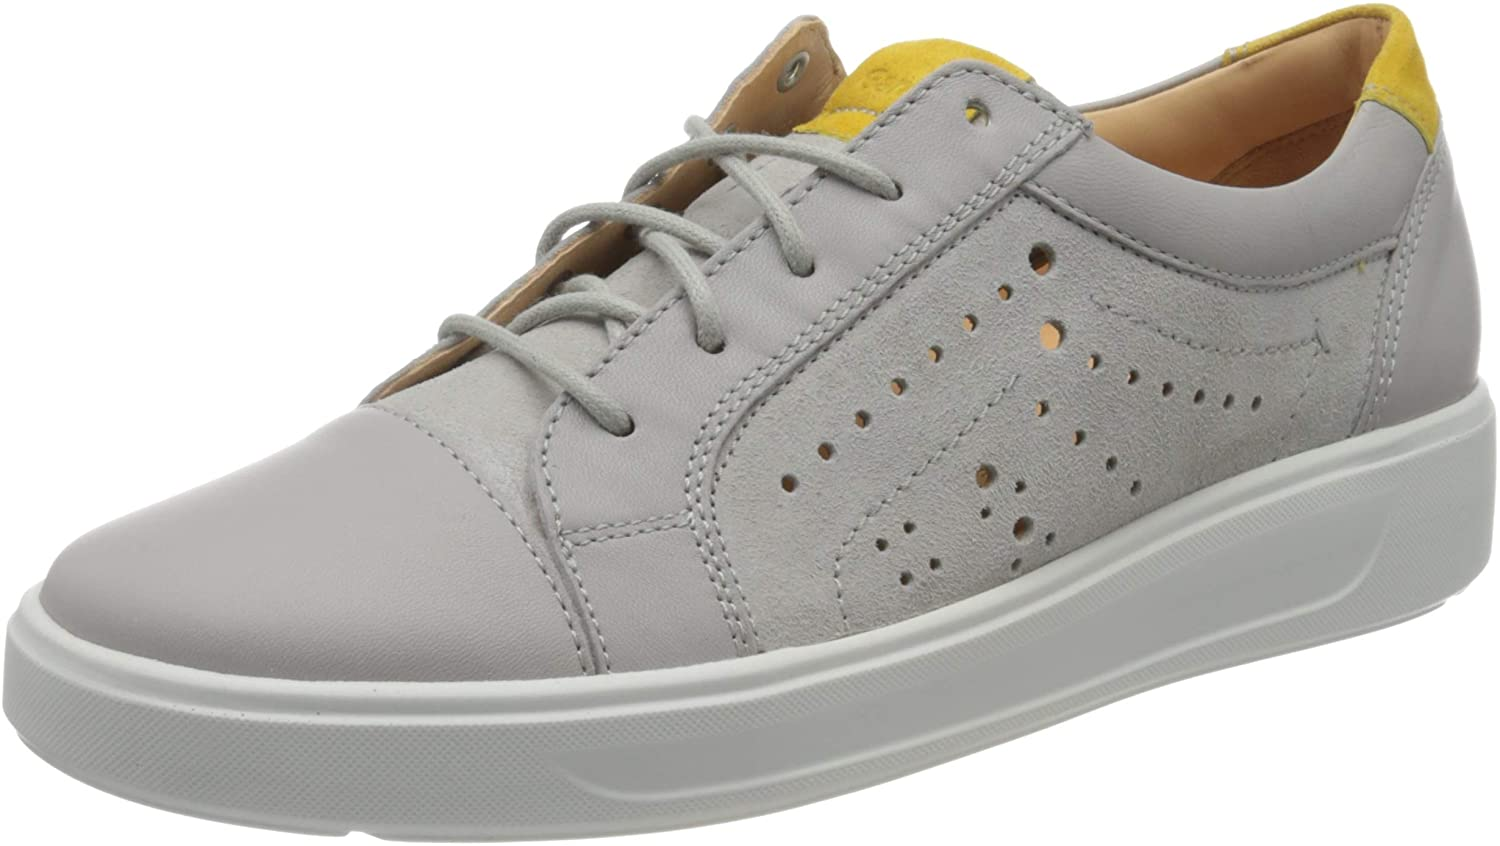 Ganter Women's Derby Lace-Up, Grey Light Grey 6700, 7.5 us